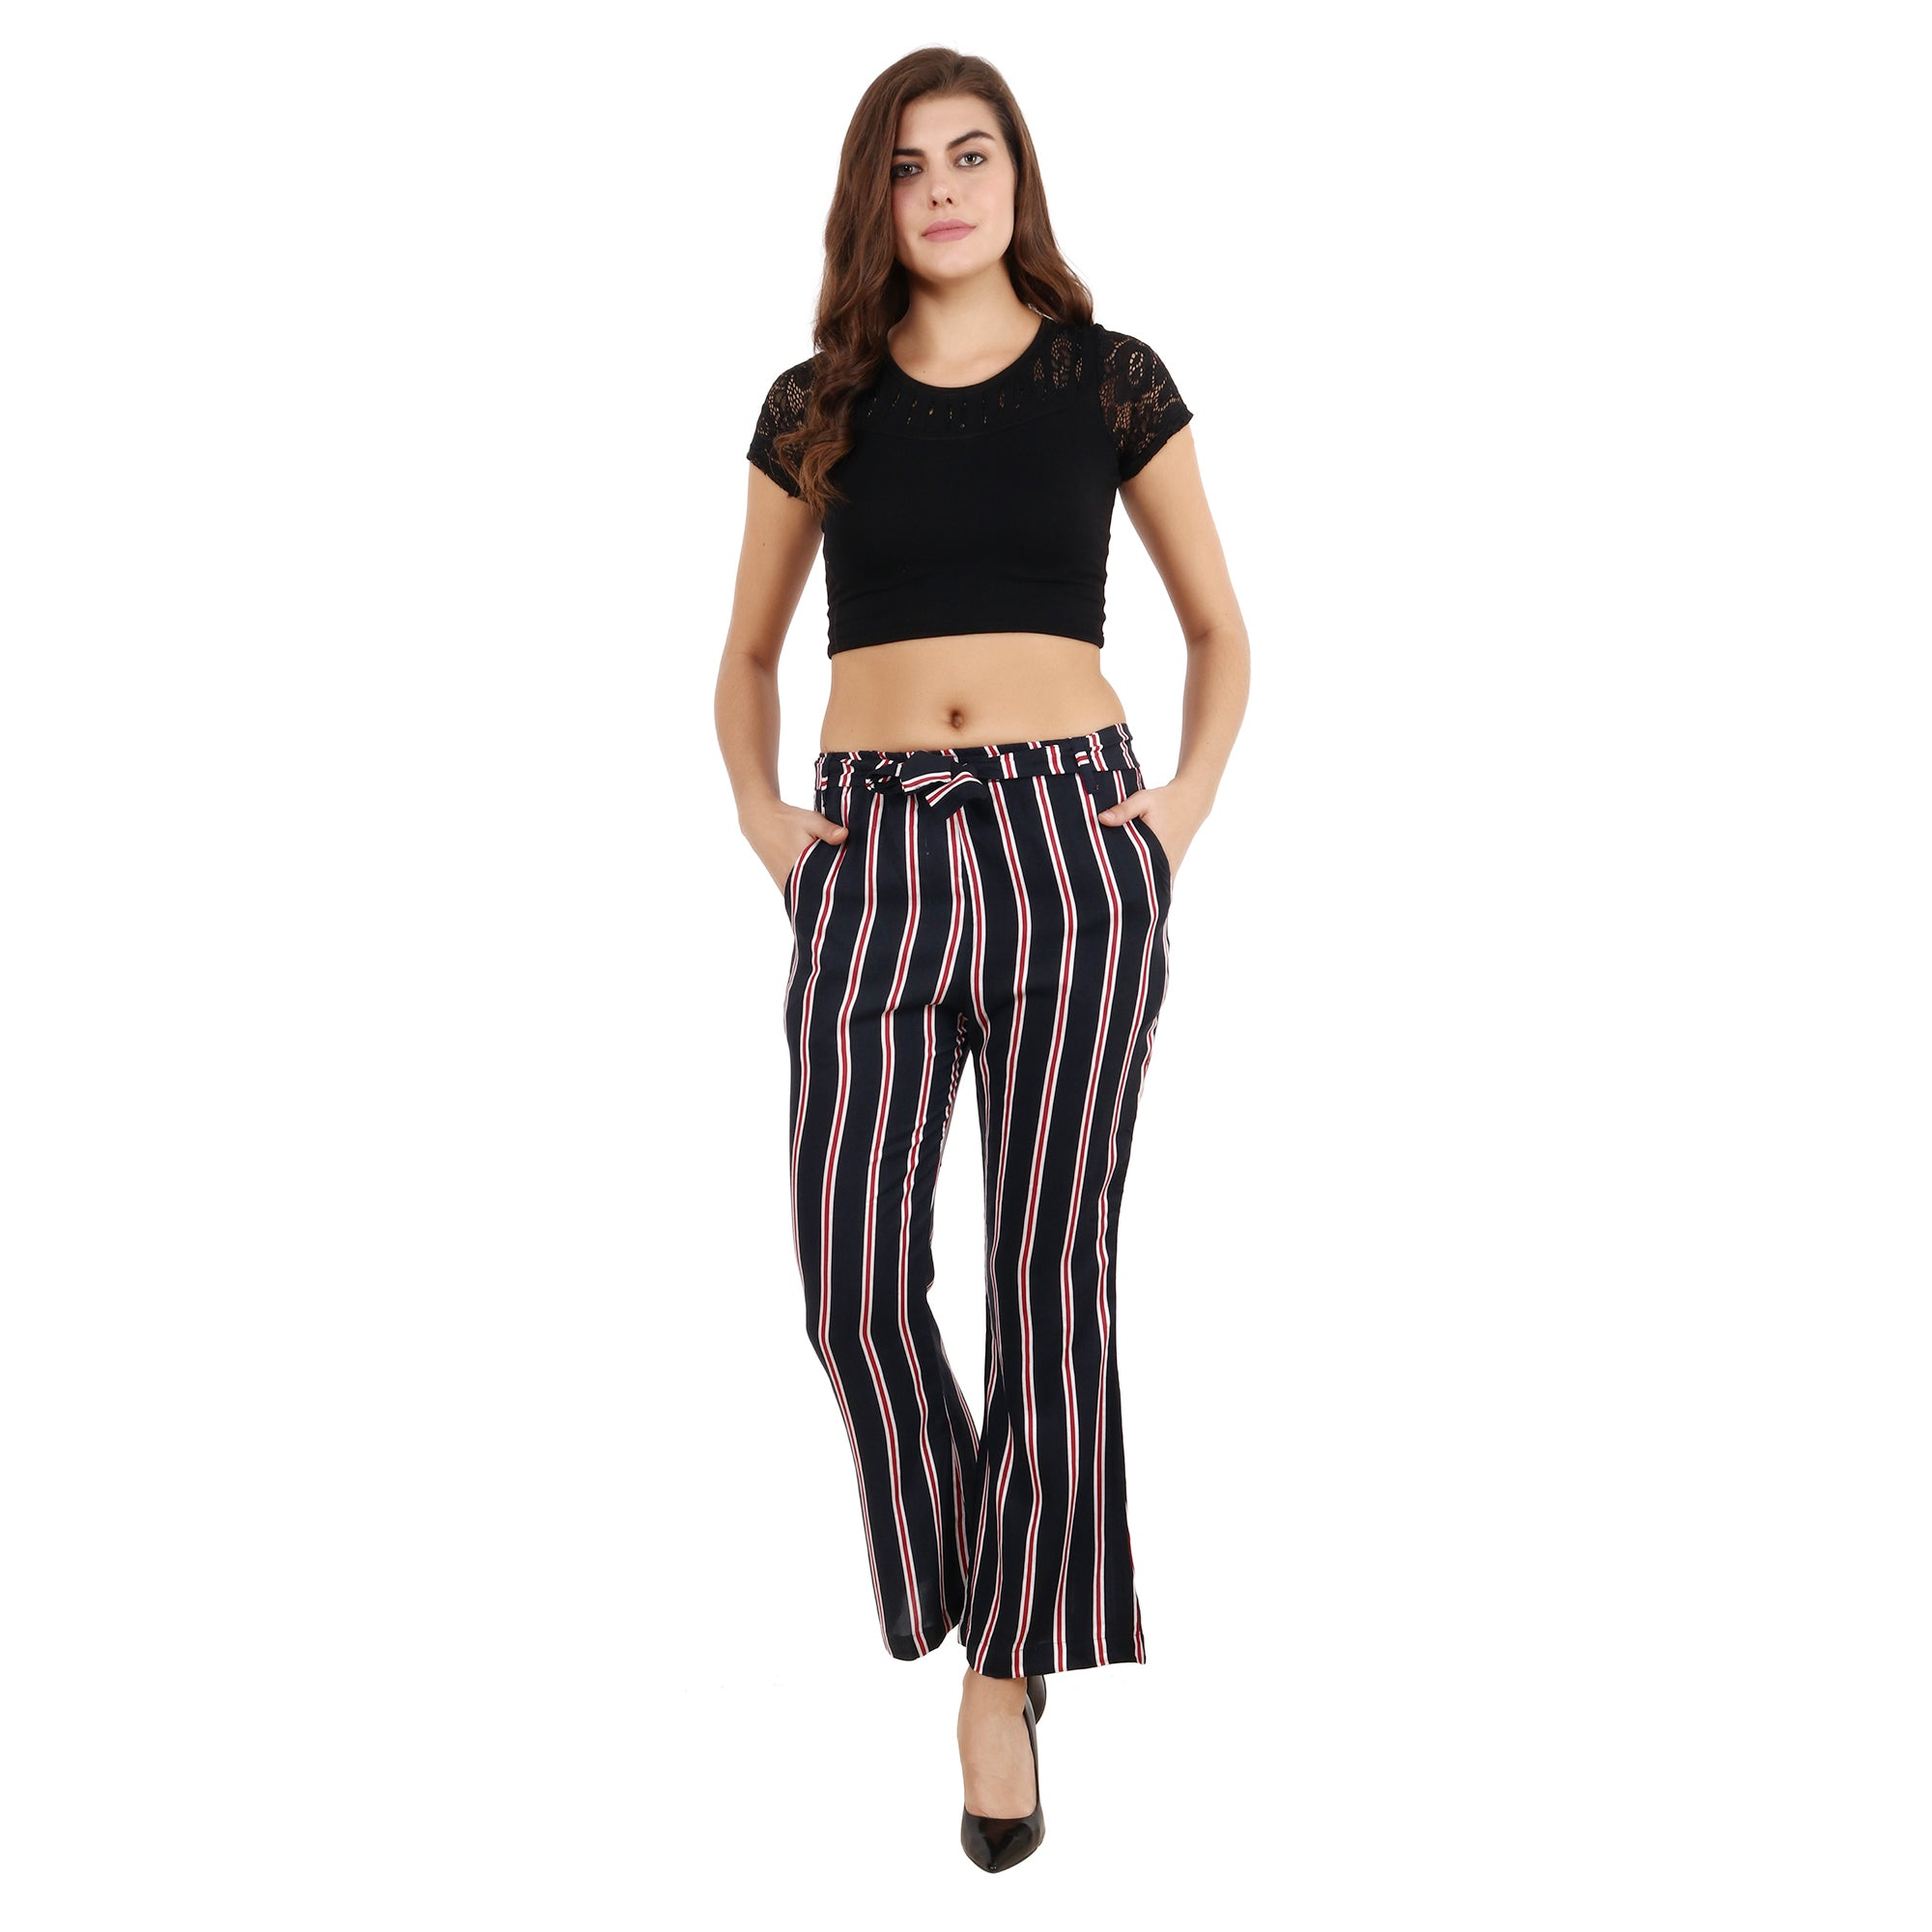 all size, bell bottom, belted, best online store, black, daily, elastic, elasticated, maroon, palazzo, plus size, pluz size, rayon, reasonable price, red, skin friendly fabrics, soft cotton,